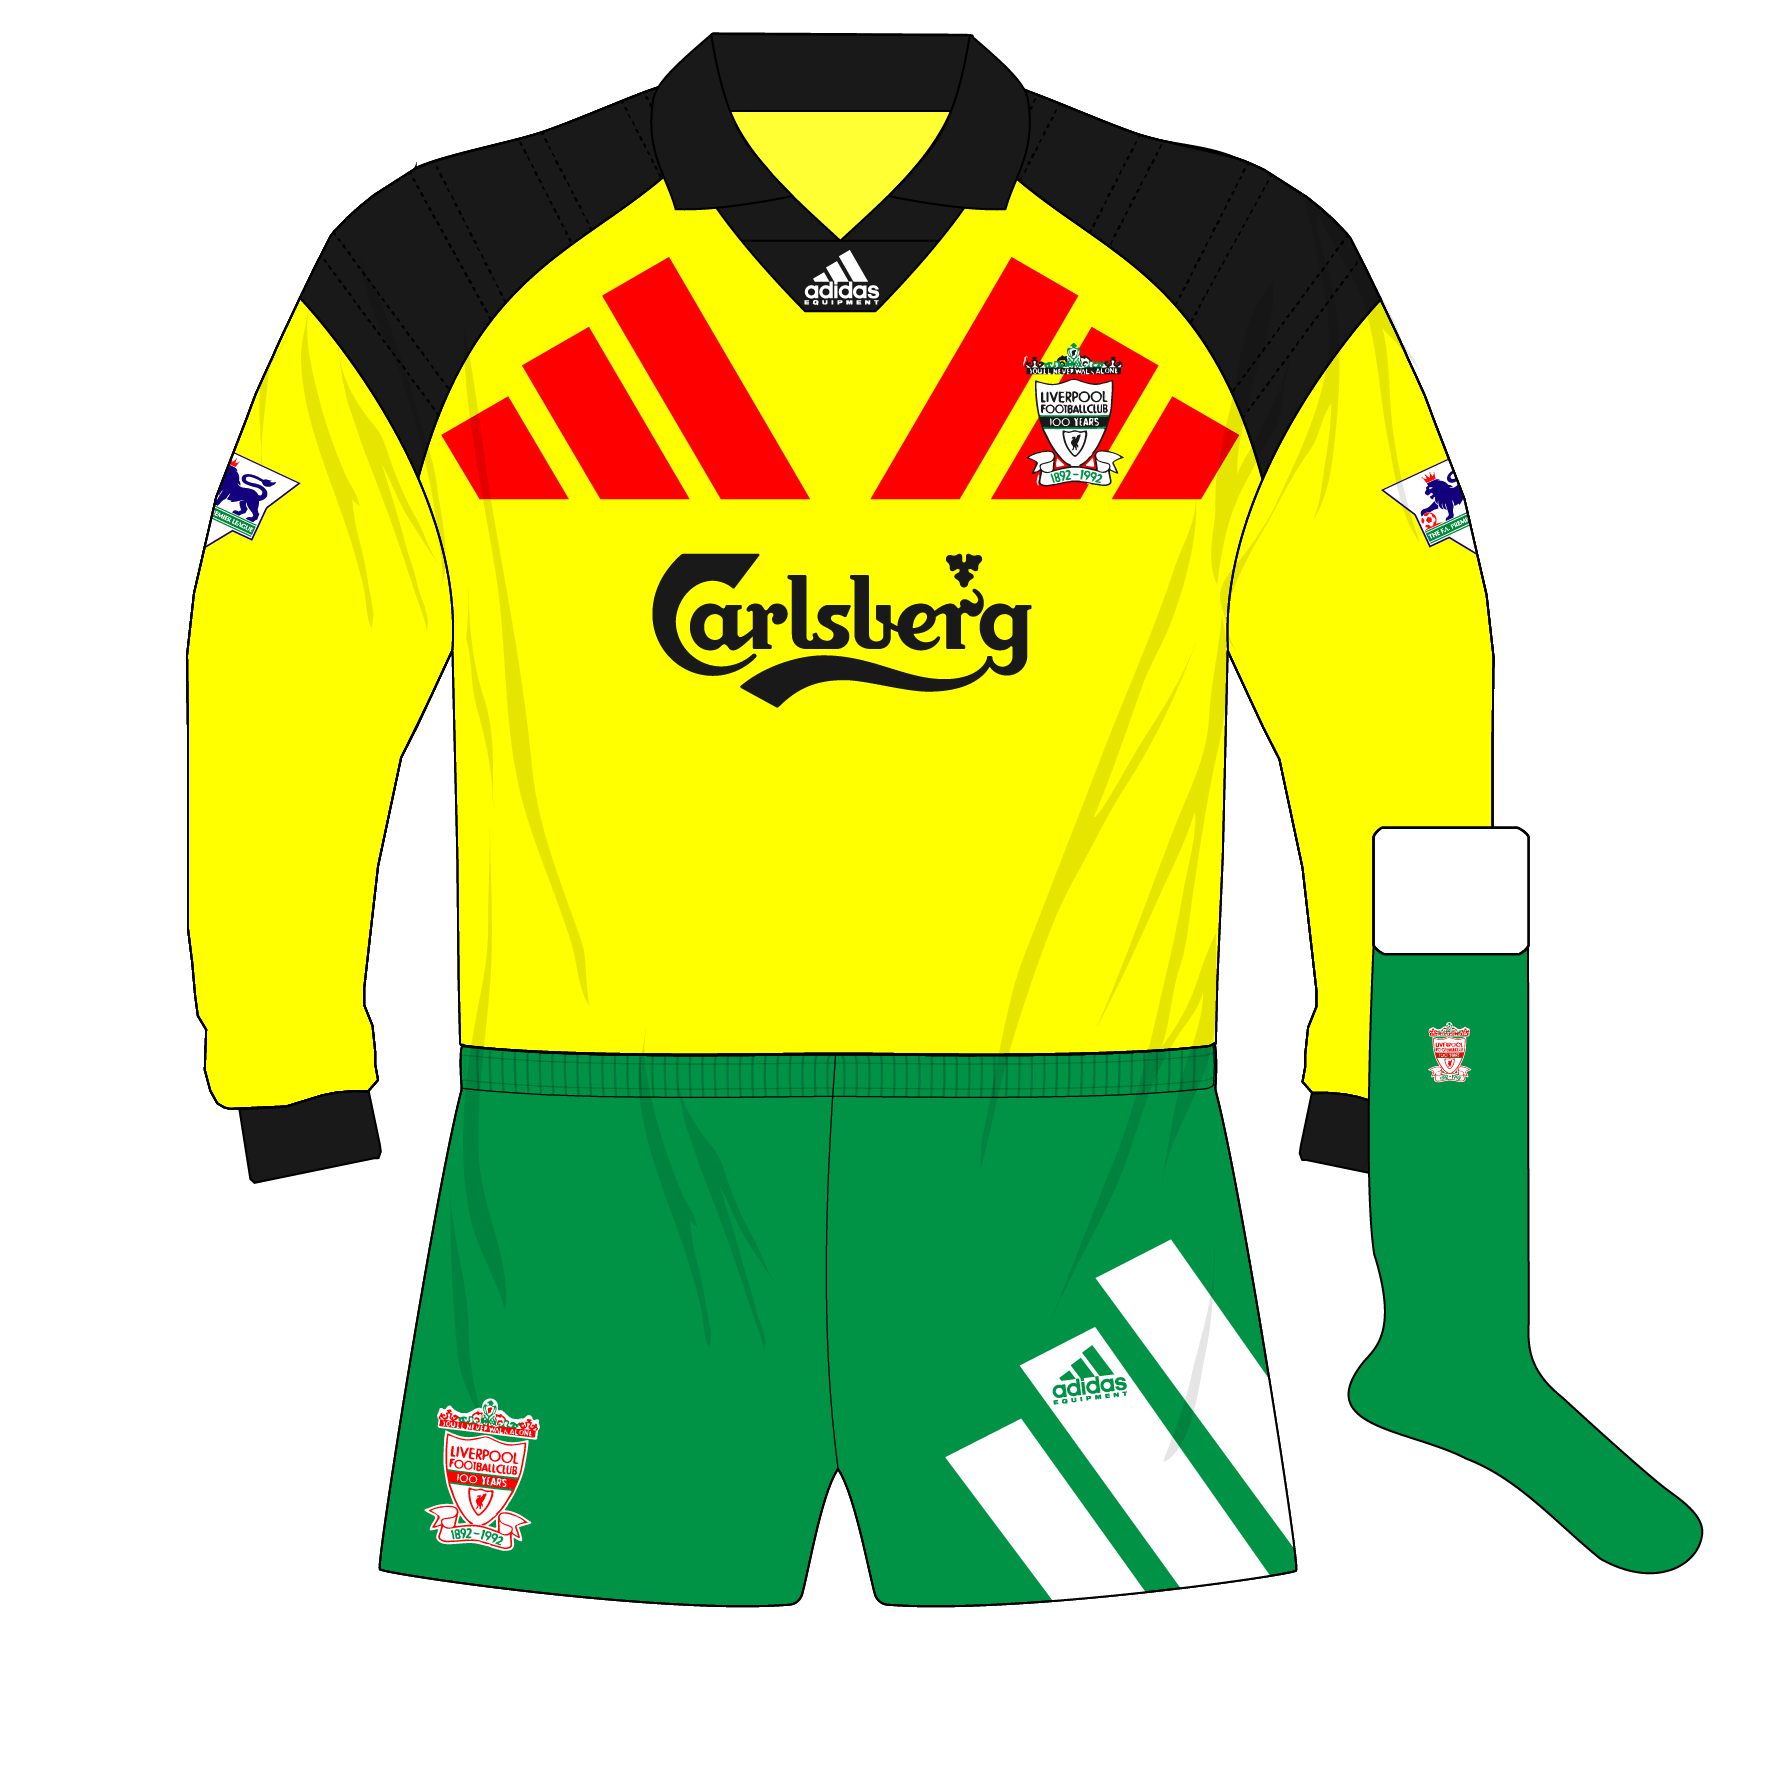 Liverpool-1992-1993-away-goalkeeper-shirt-yellow-adidas-Equipment-Carlsberg-01